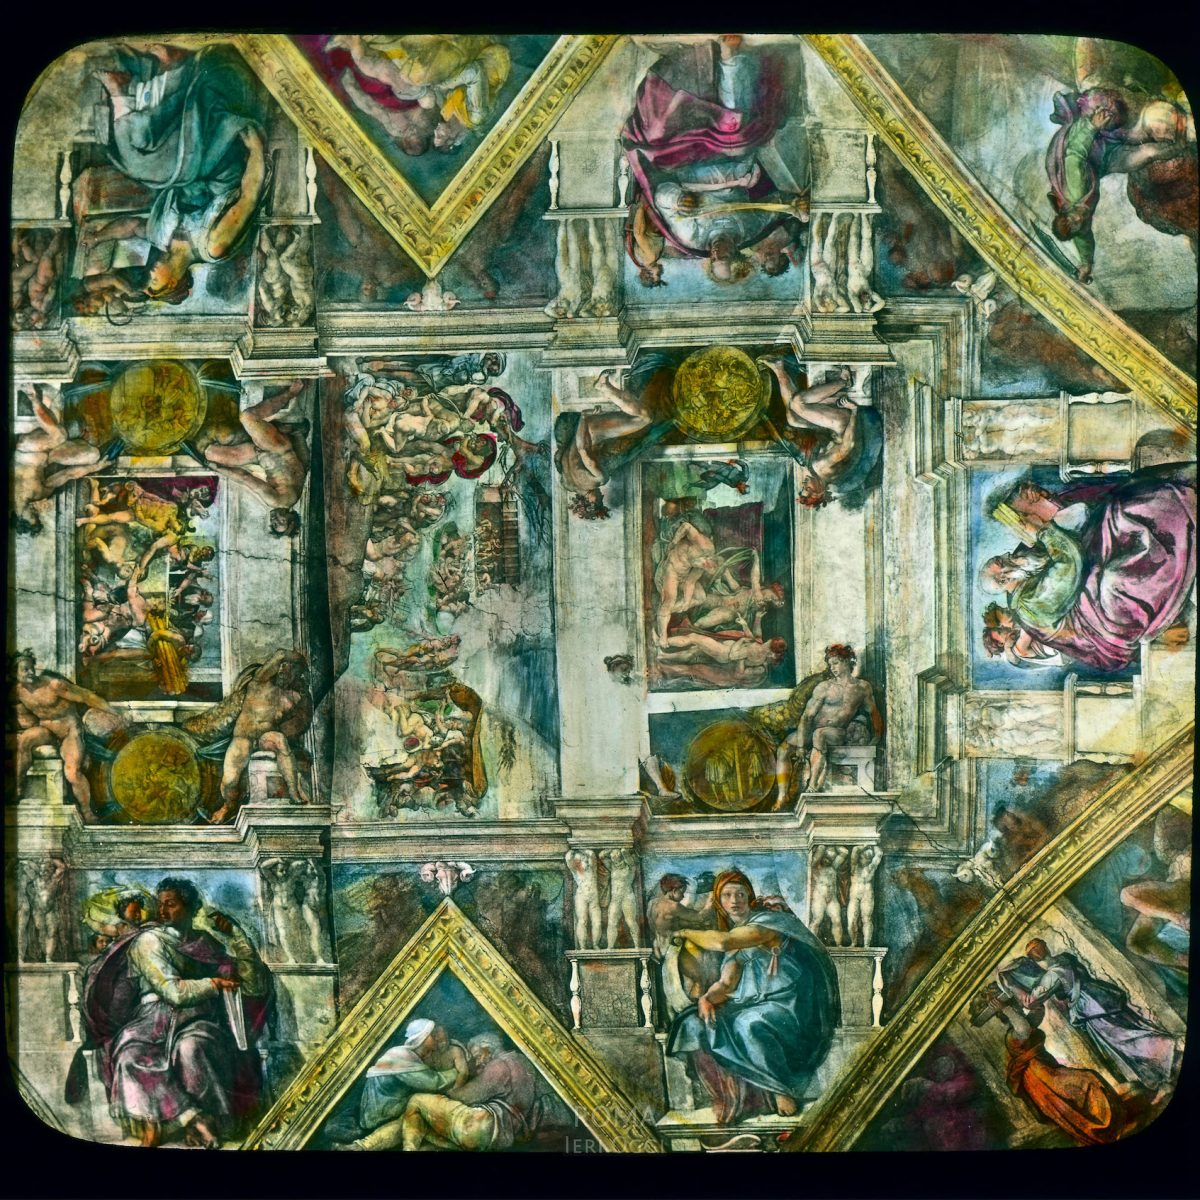 Vatican City. Sistine Chapel: interior detail view of Michelangelo's ceiling frescoes View in tinted lantern slide, ca. 1919-1938. Michelangelo's frescoes date from 1508-1512.